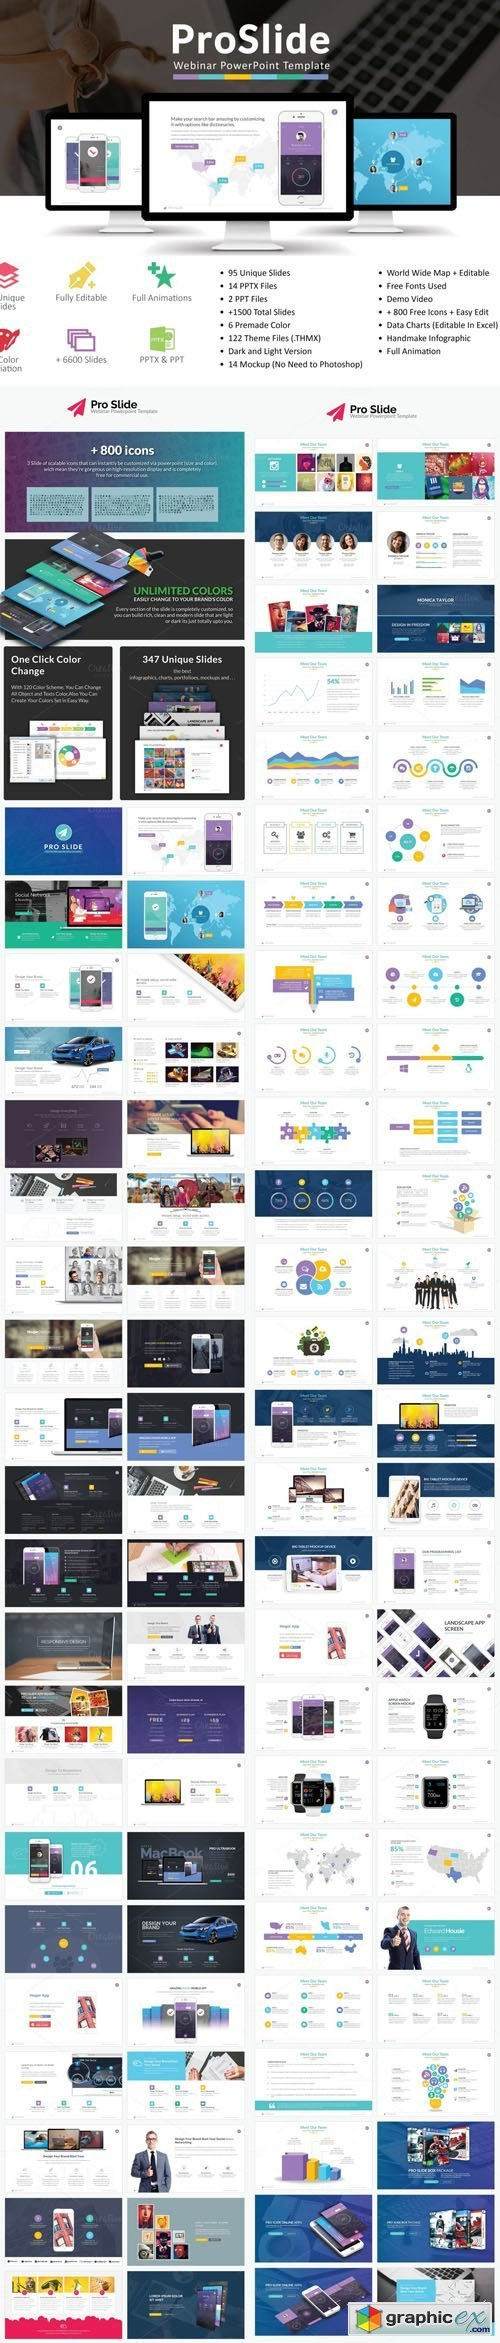 Proslide Webinar Powerpoint Template » Free Download Vector Stock Inside Webinar Powerpoint Templates